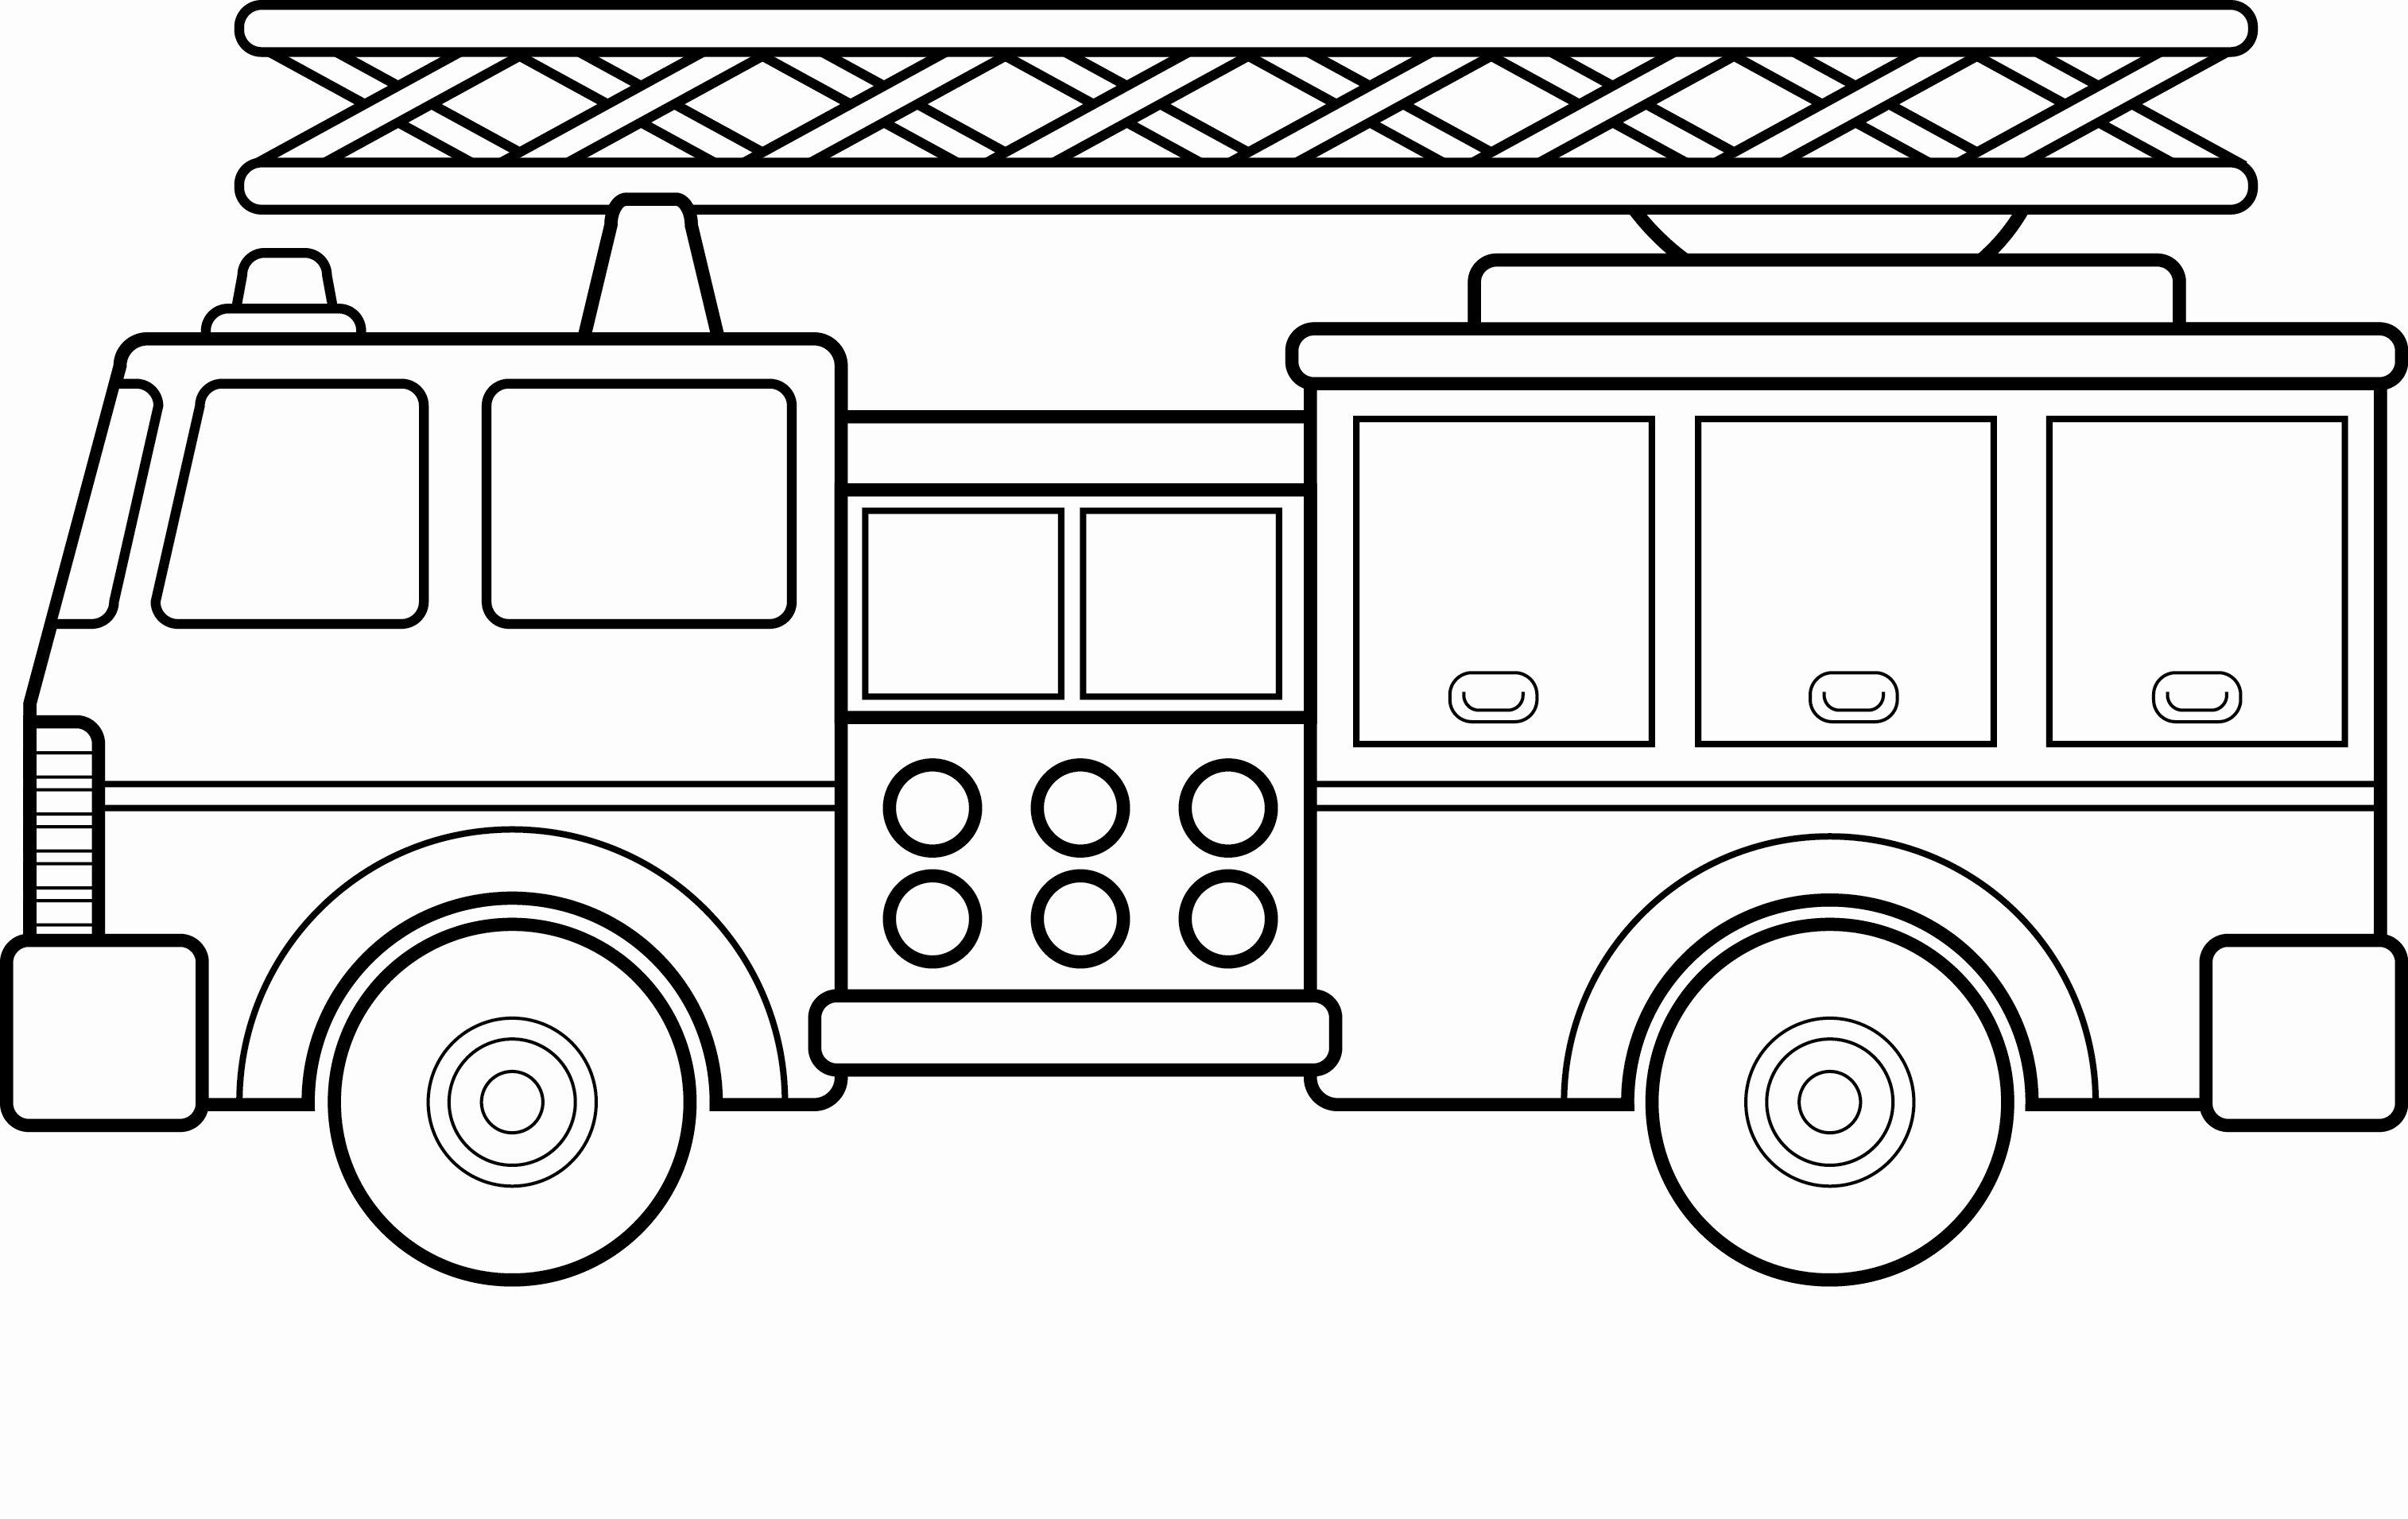 Transportation Coloring Pages For Preschoolers Lovely New Preschool Truck Coloring She Monster Truck Coloring Pages Cars Coloring Pages Firetruck Coloring Page